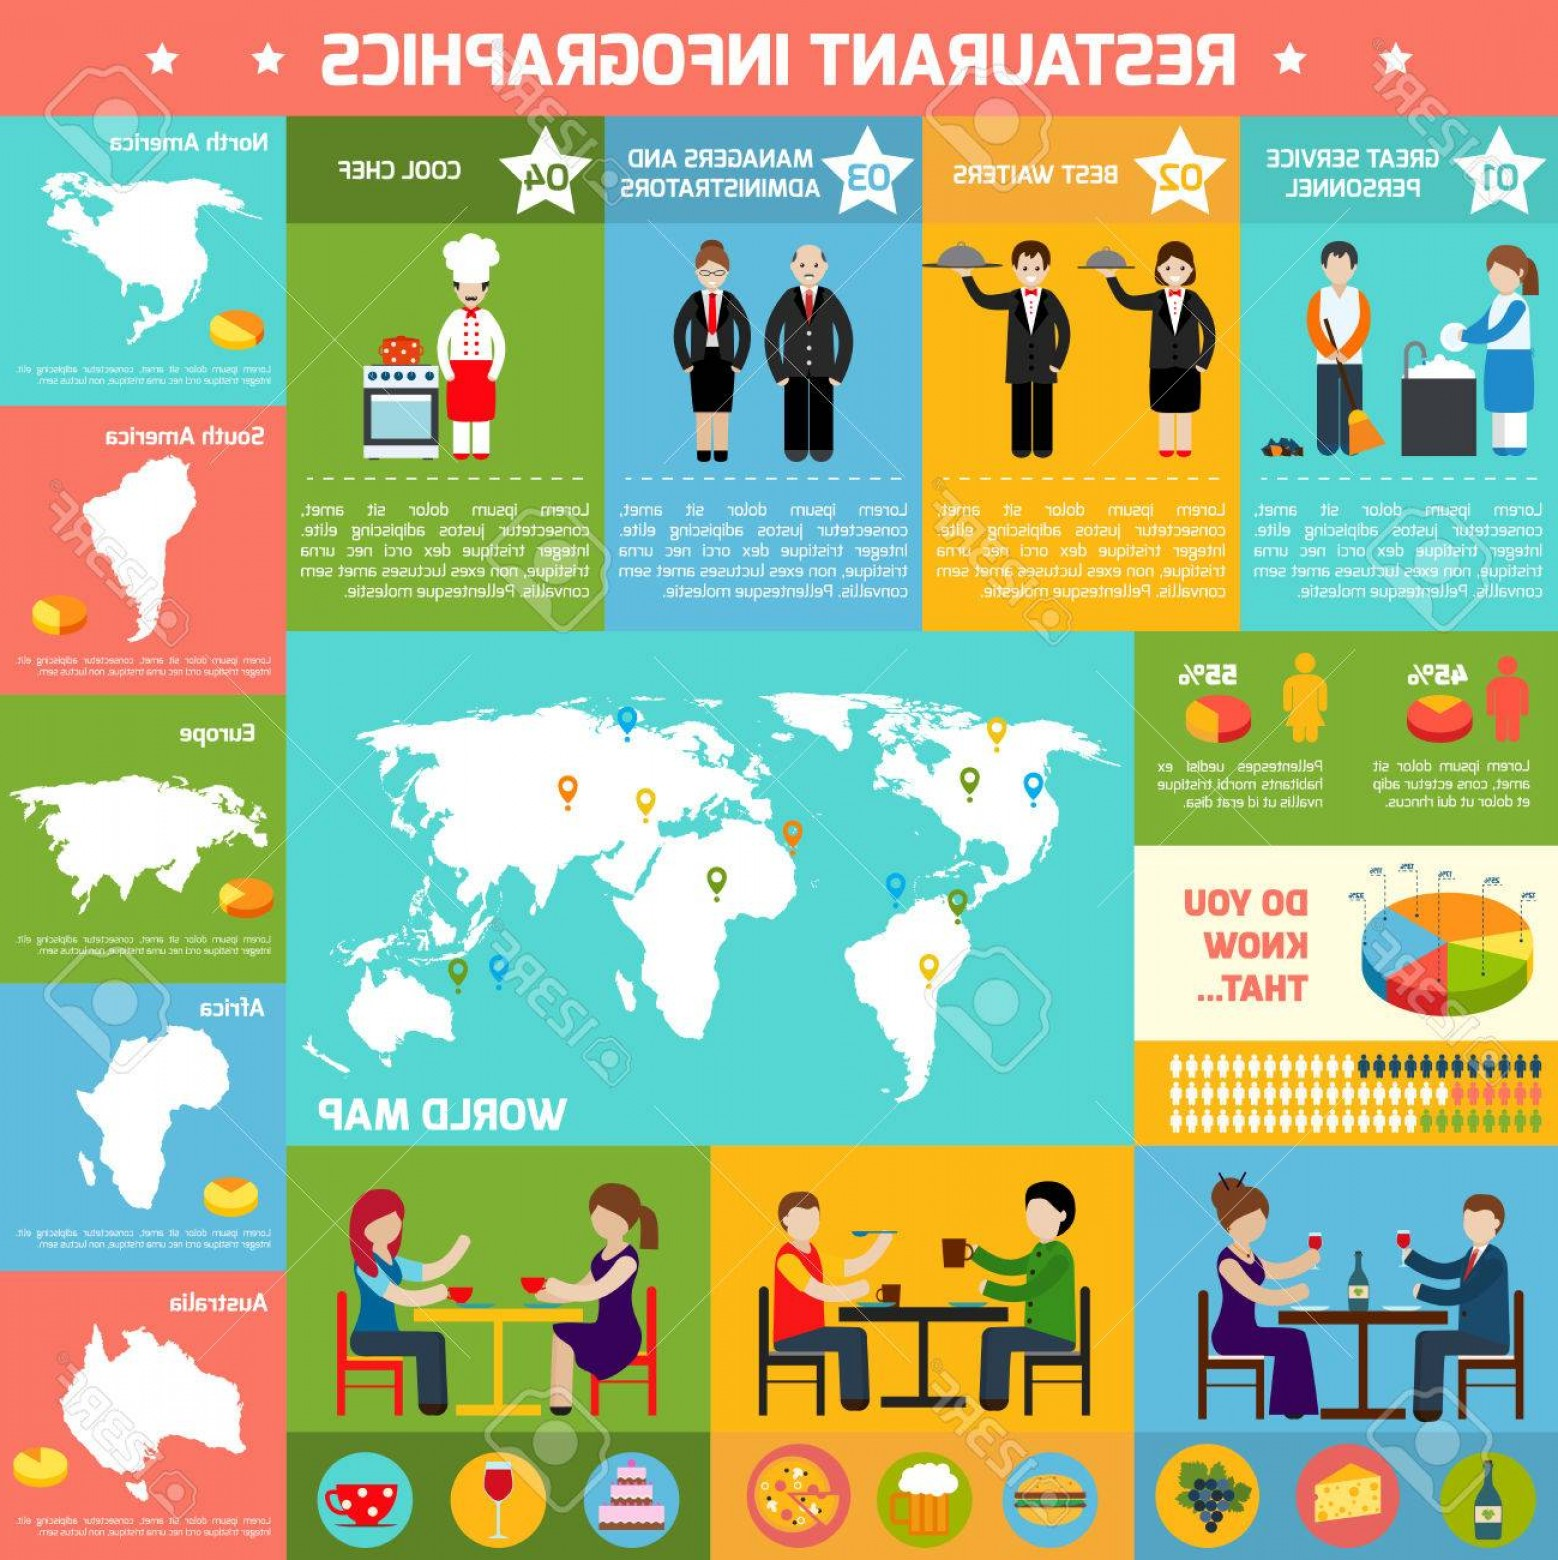 45 Pet Vector Map: Photostock Vector Restaurant Infographic Set With Employees Charts And World Map In The Middle Vector Illustration